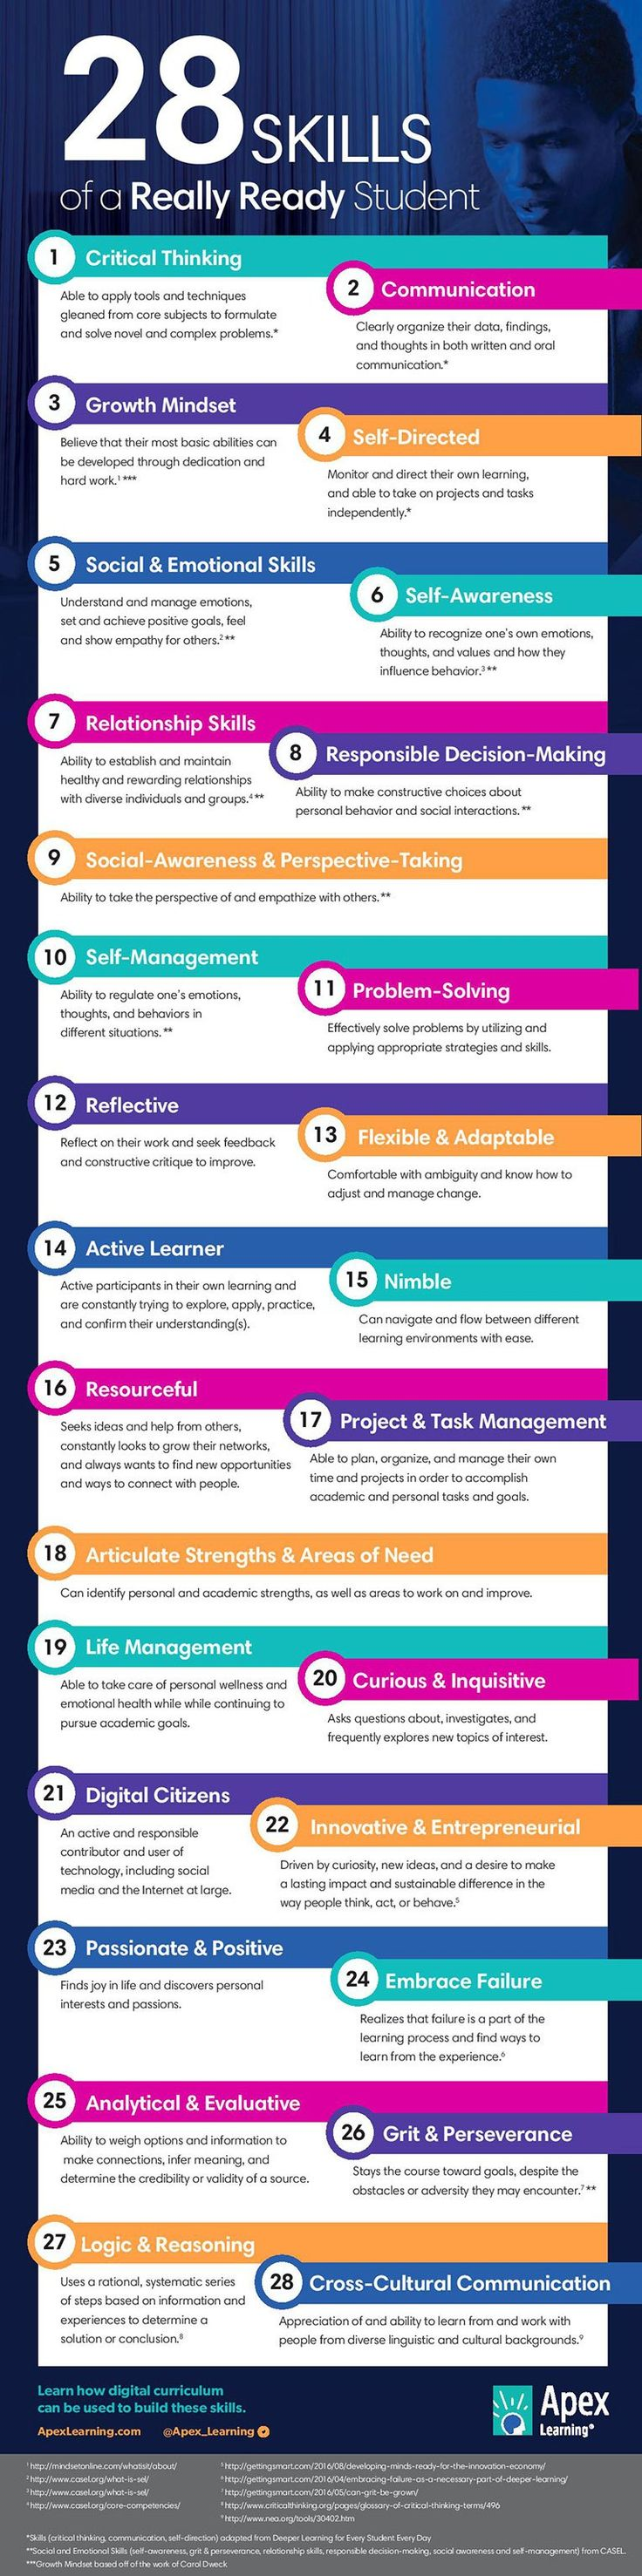 best images about life skills family consumer science on 28 skills of a really ready student infographic what are the skills that